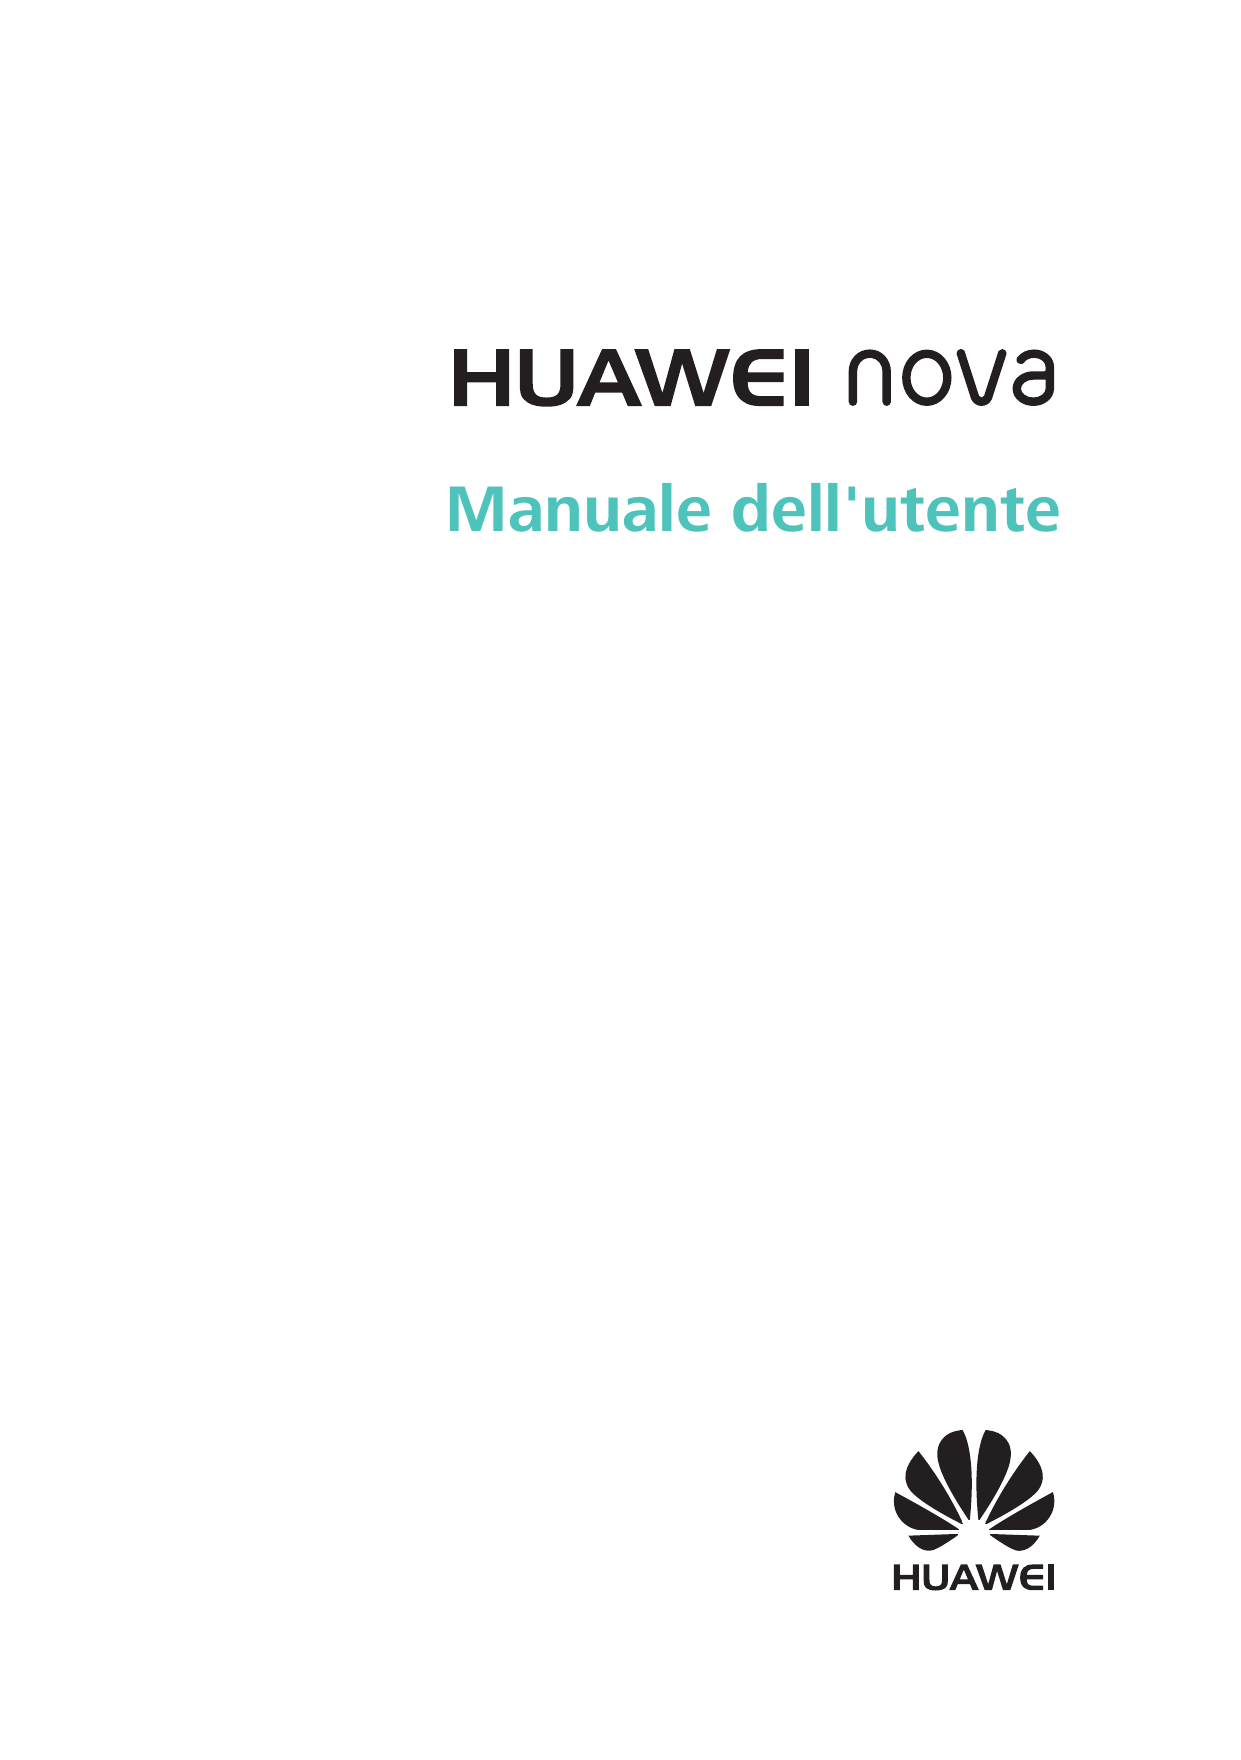 Manuale Huawei Nova Android 6 0 Coopvoce Guides